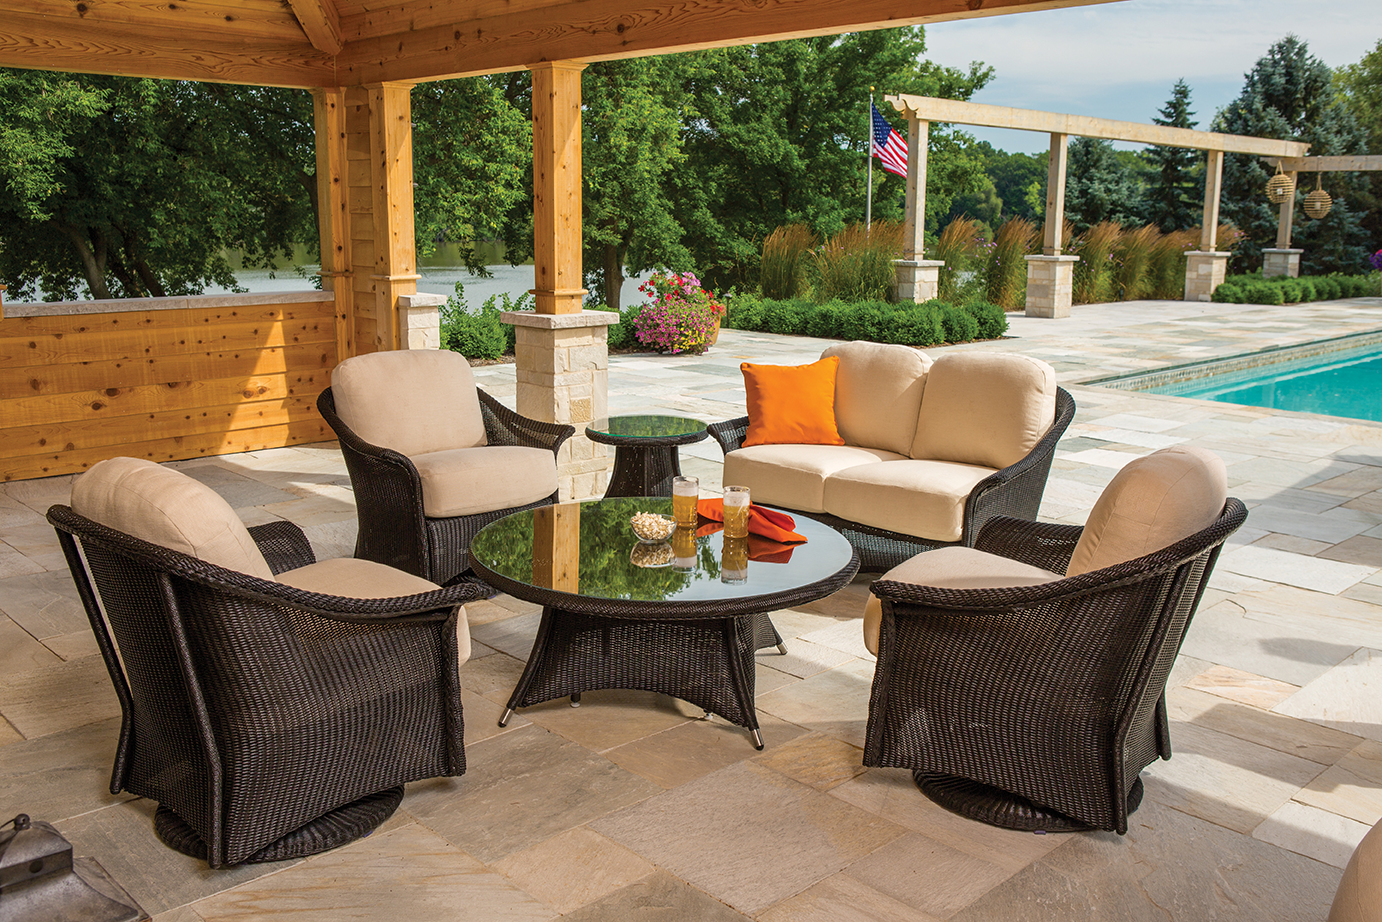 Patio Furniture Locations In Sarasota, Bradenton, Clearwater Fl   Patio  Furniture   Outdoor Seating And Dining